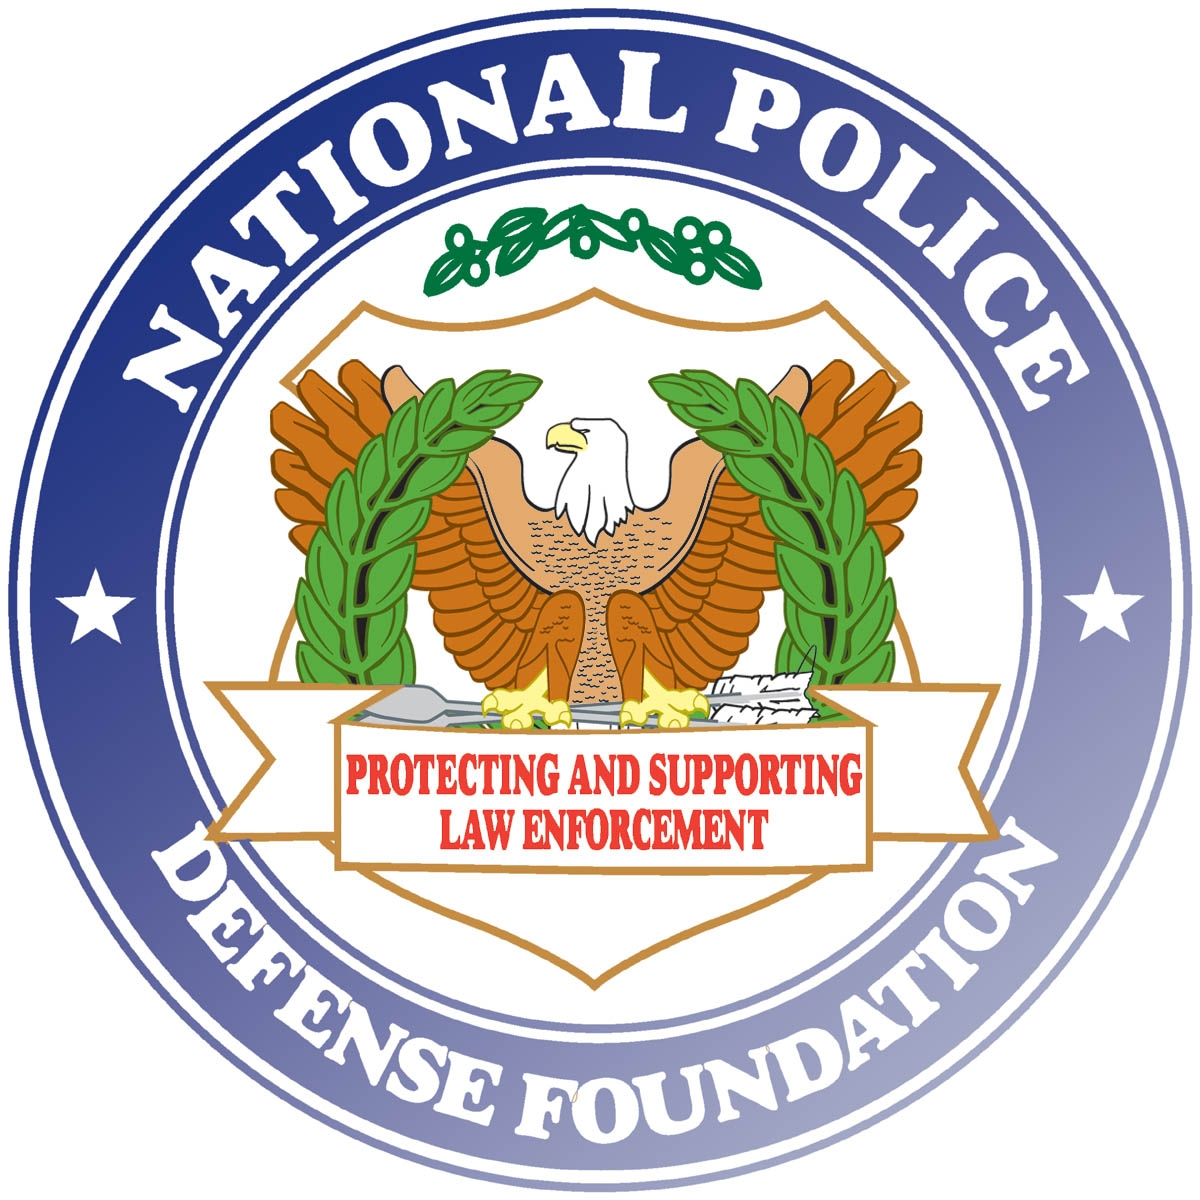 National Police Defense Foundation